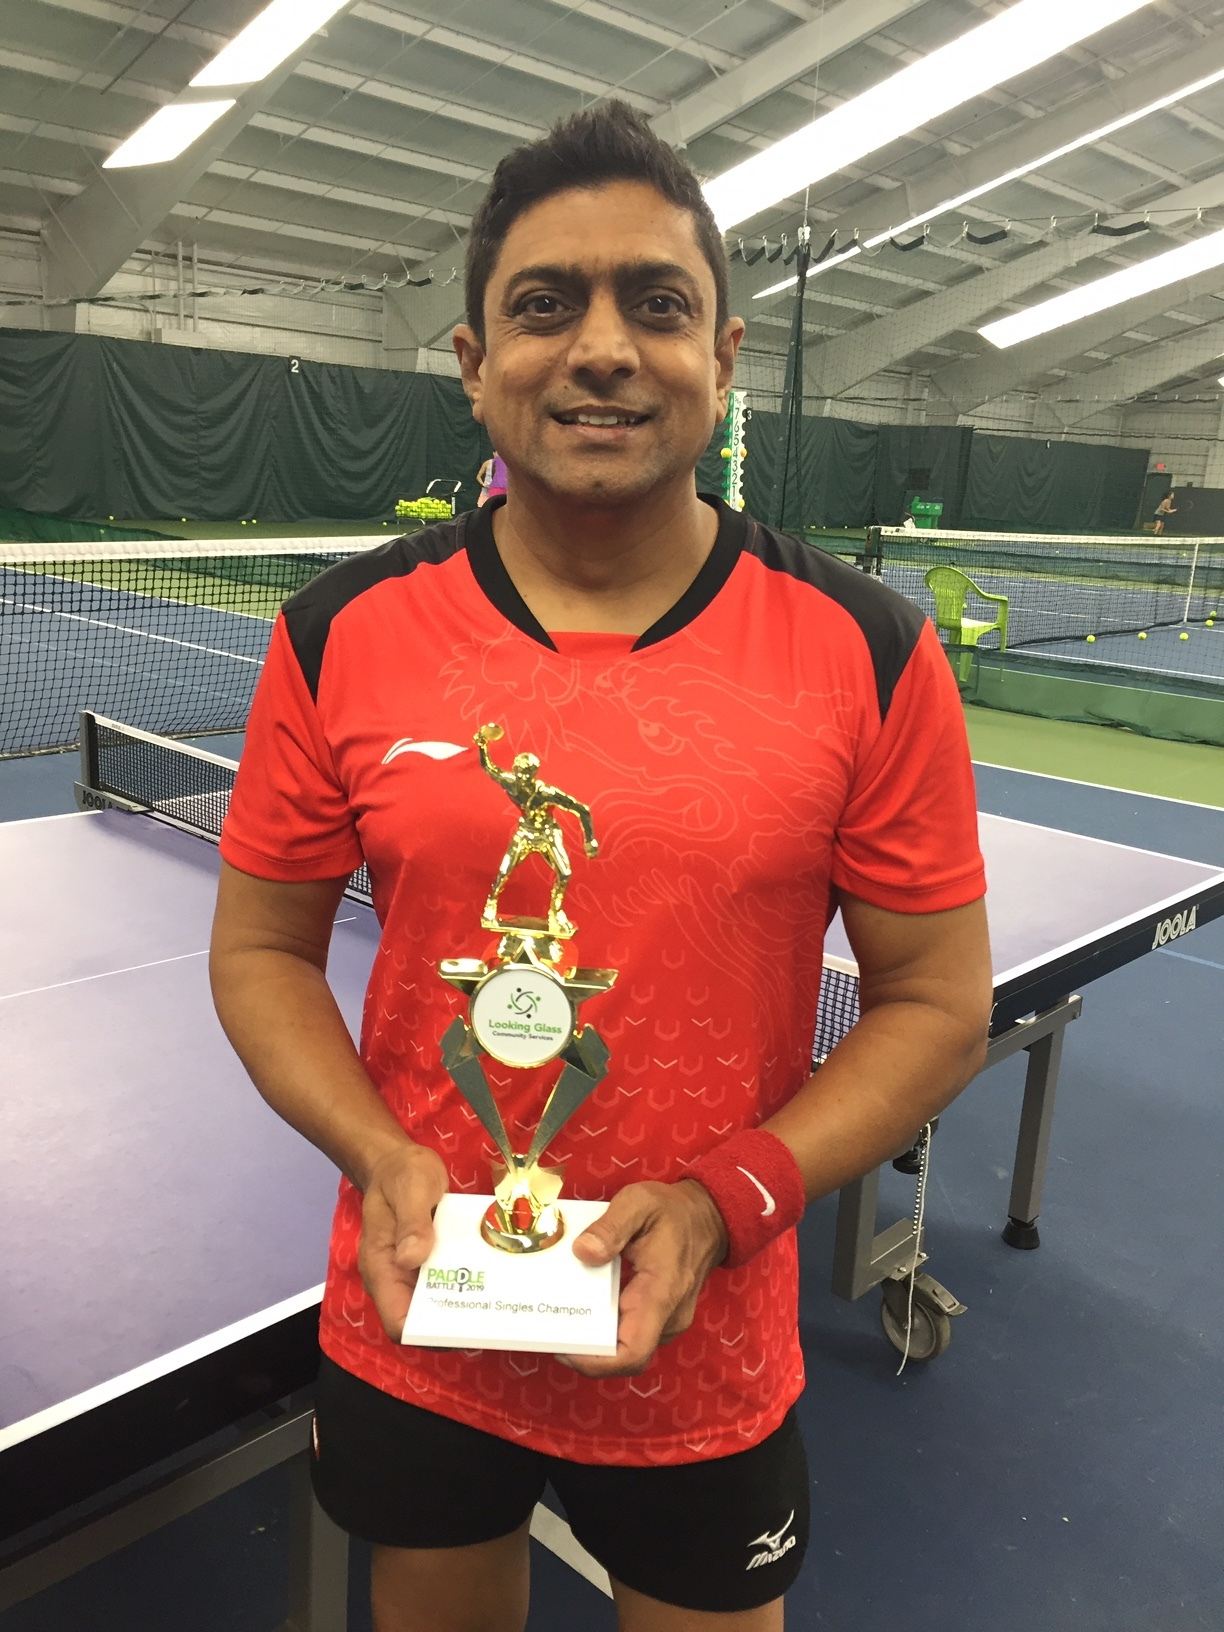 Singles pro champ Samir (he won doubles AND singles!)